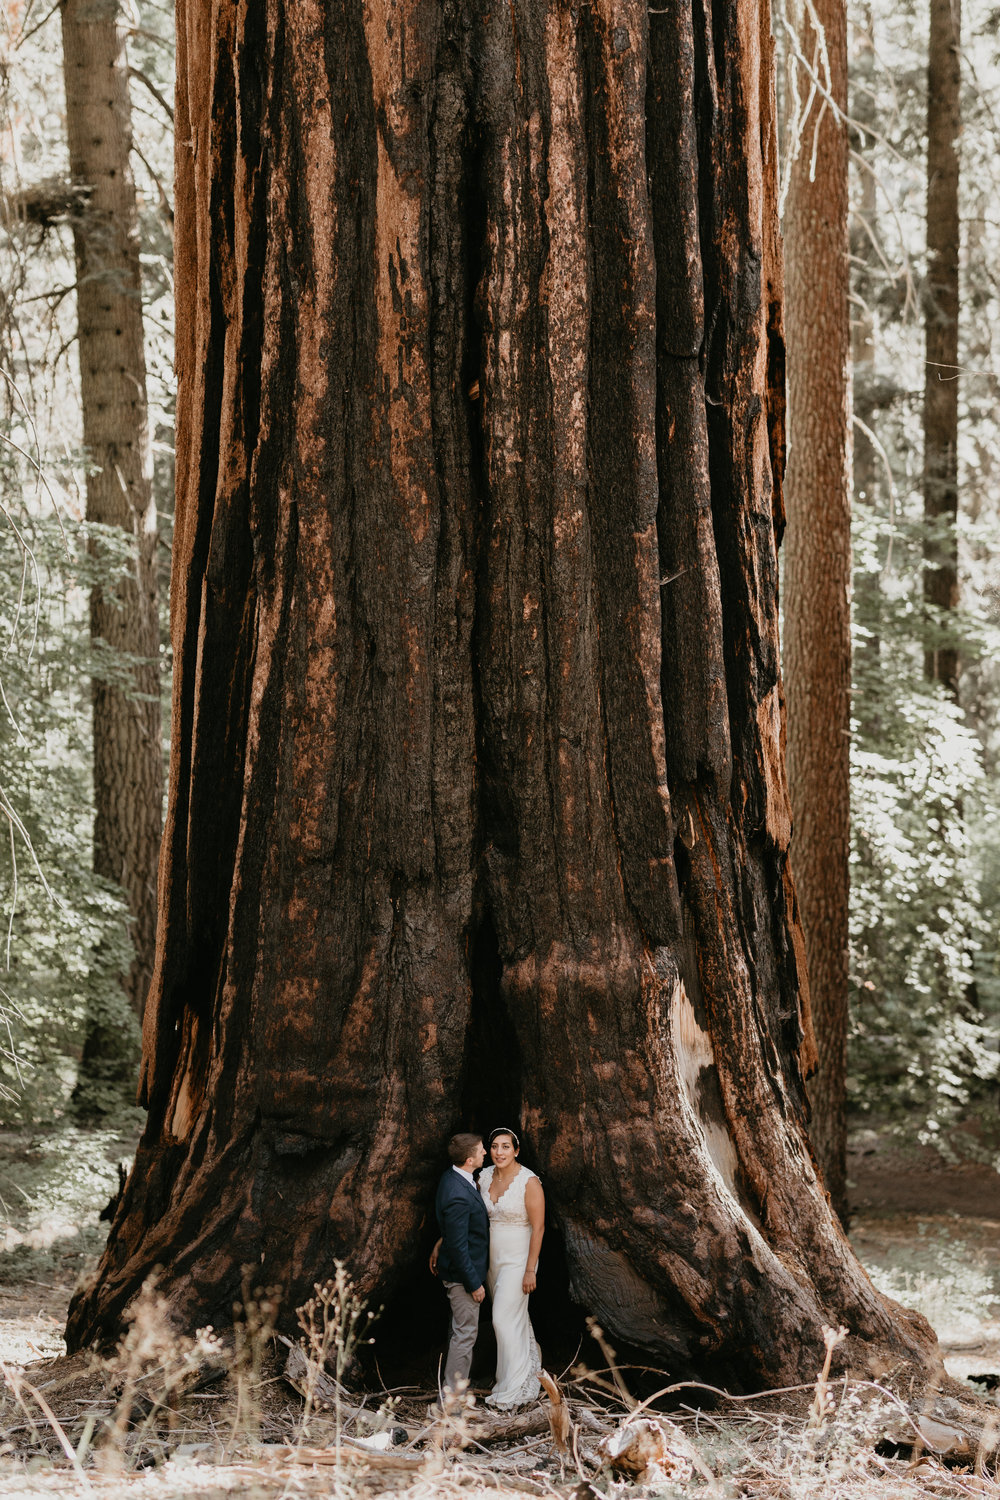 nicole-daacke-photography-sequoia-national-park-adventurous-elopement-sequoia-elopement-photographer-redwoods-california-intimate-wedding-photographer-9.jpg